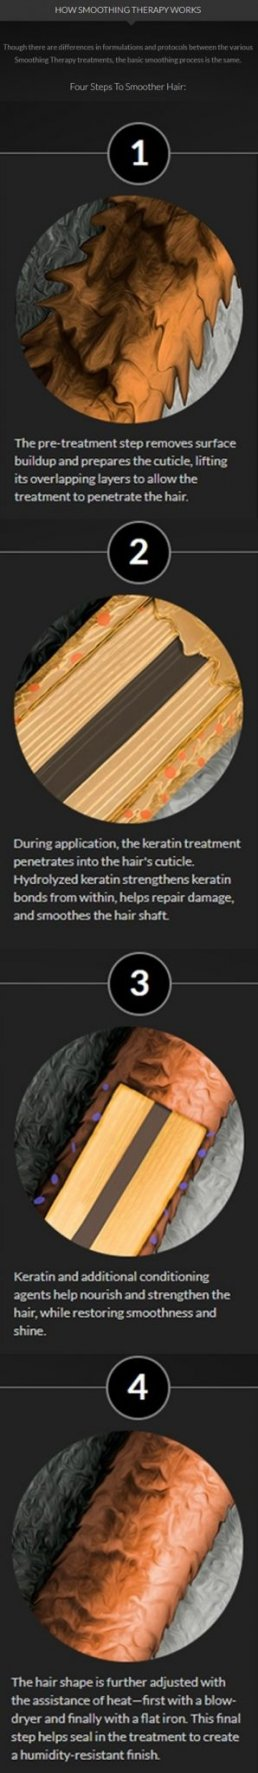 keratin treatment process used at hair salon 51 in hicksville which involves 4 steps